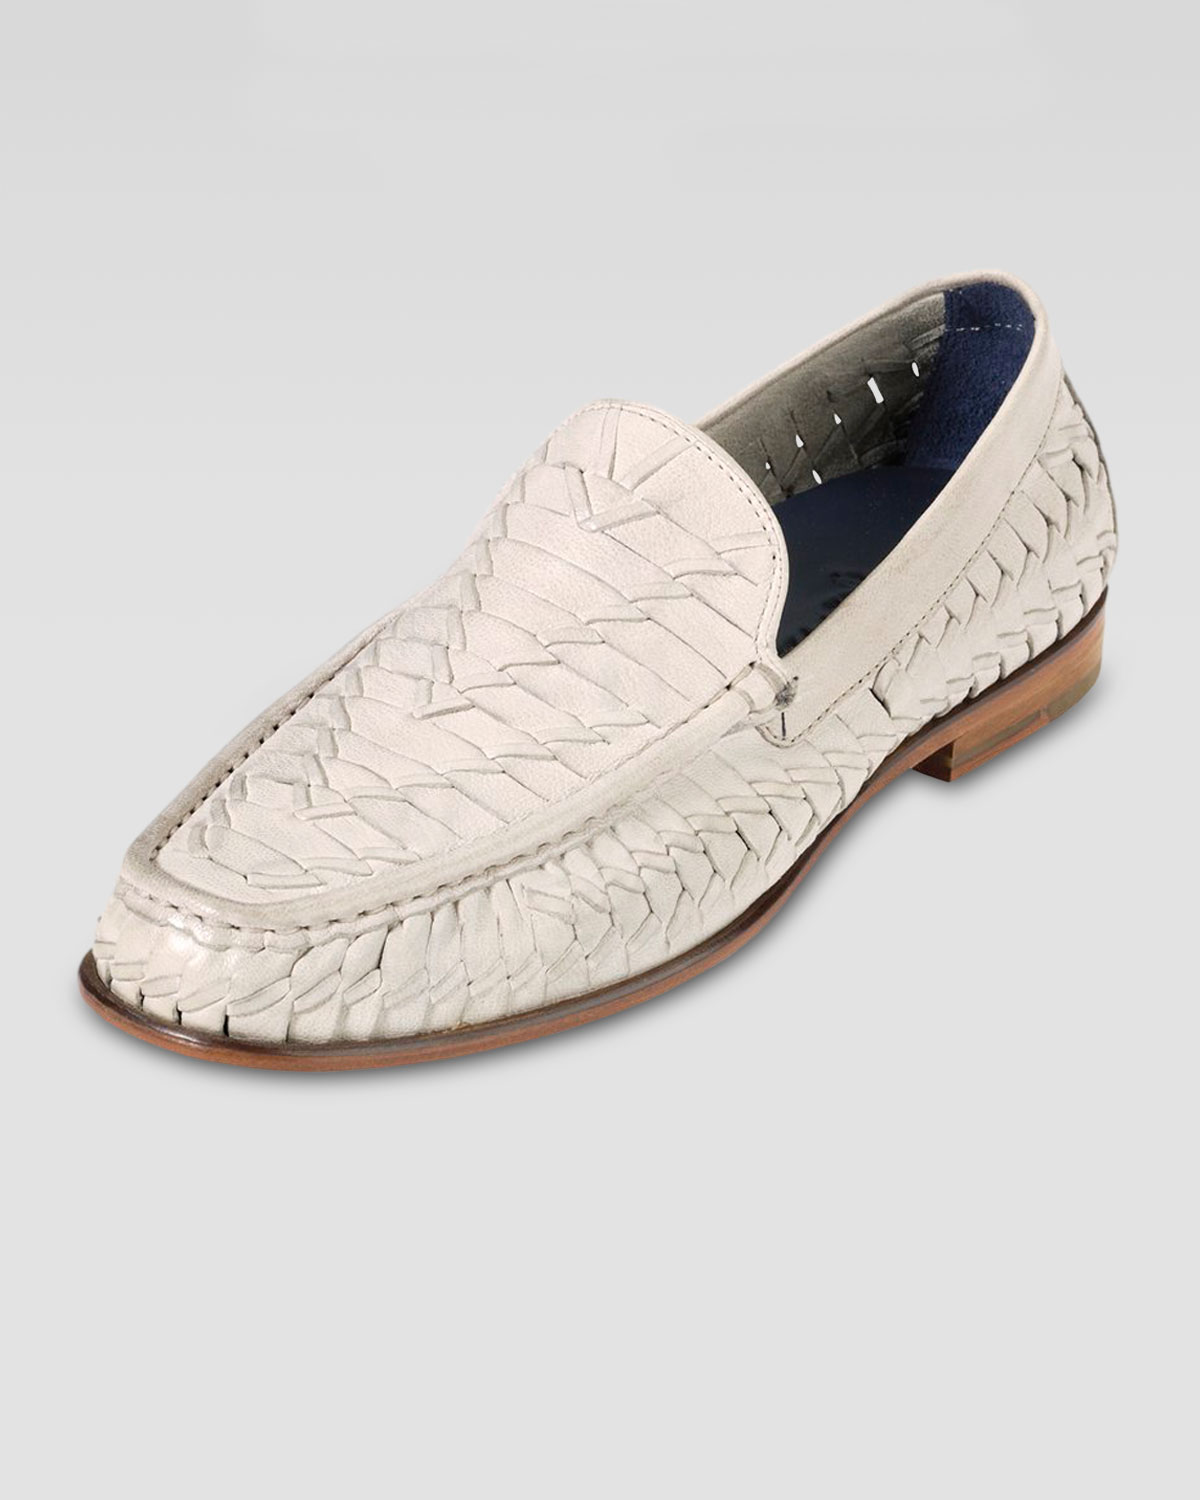 0255cfb552e11 Cole Haan Air Tremont Woven Leather Loafer in White for Men - Lyst